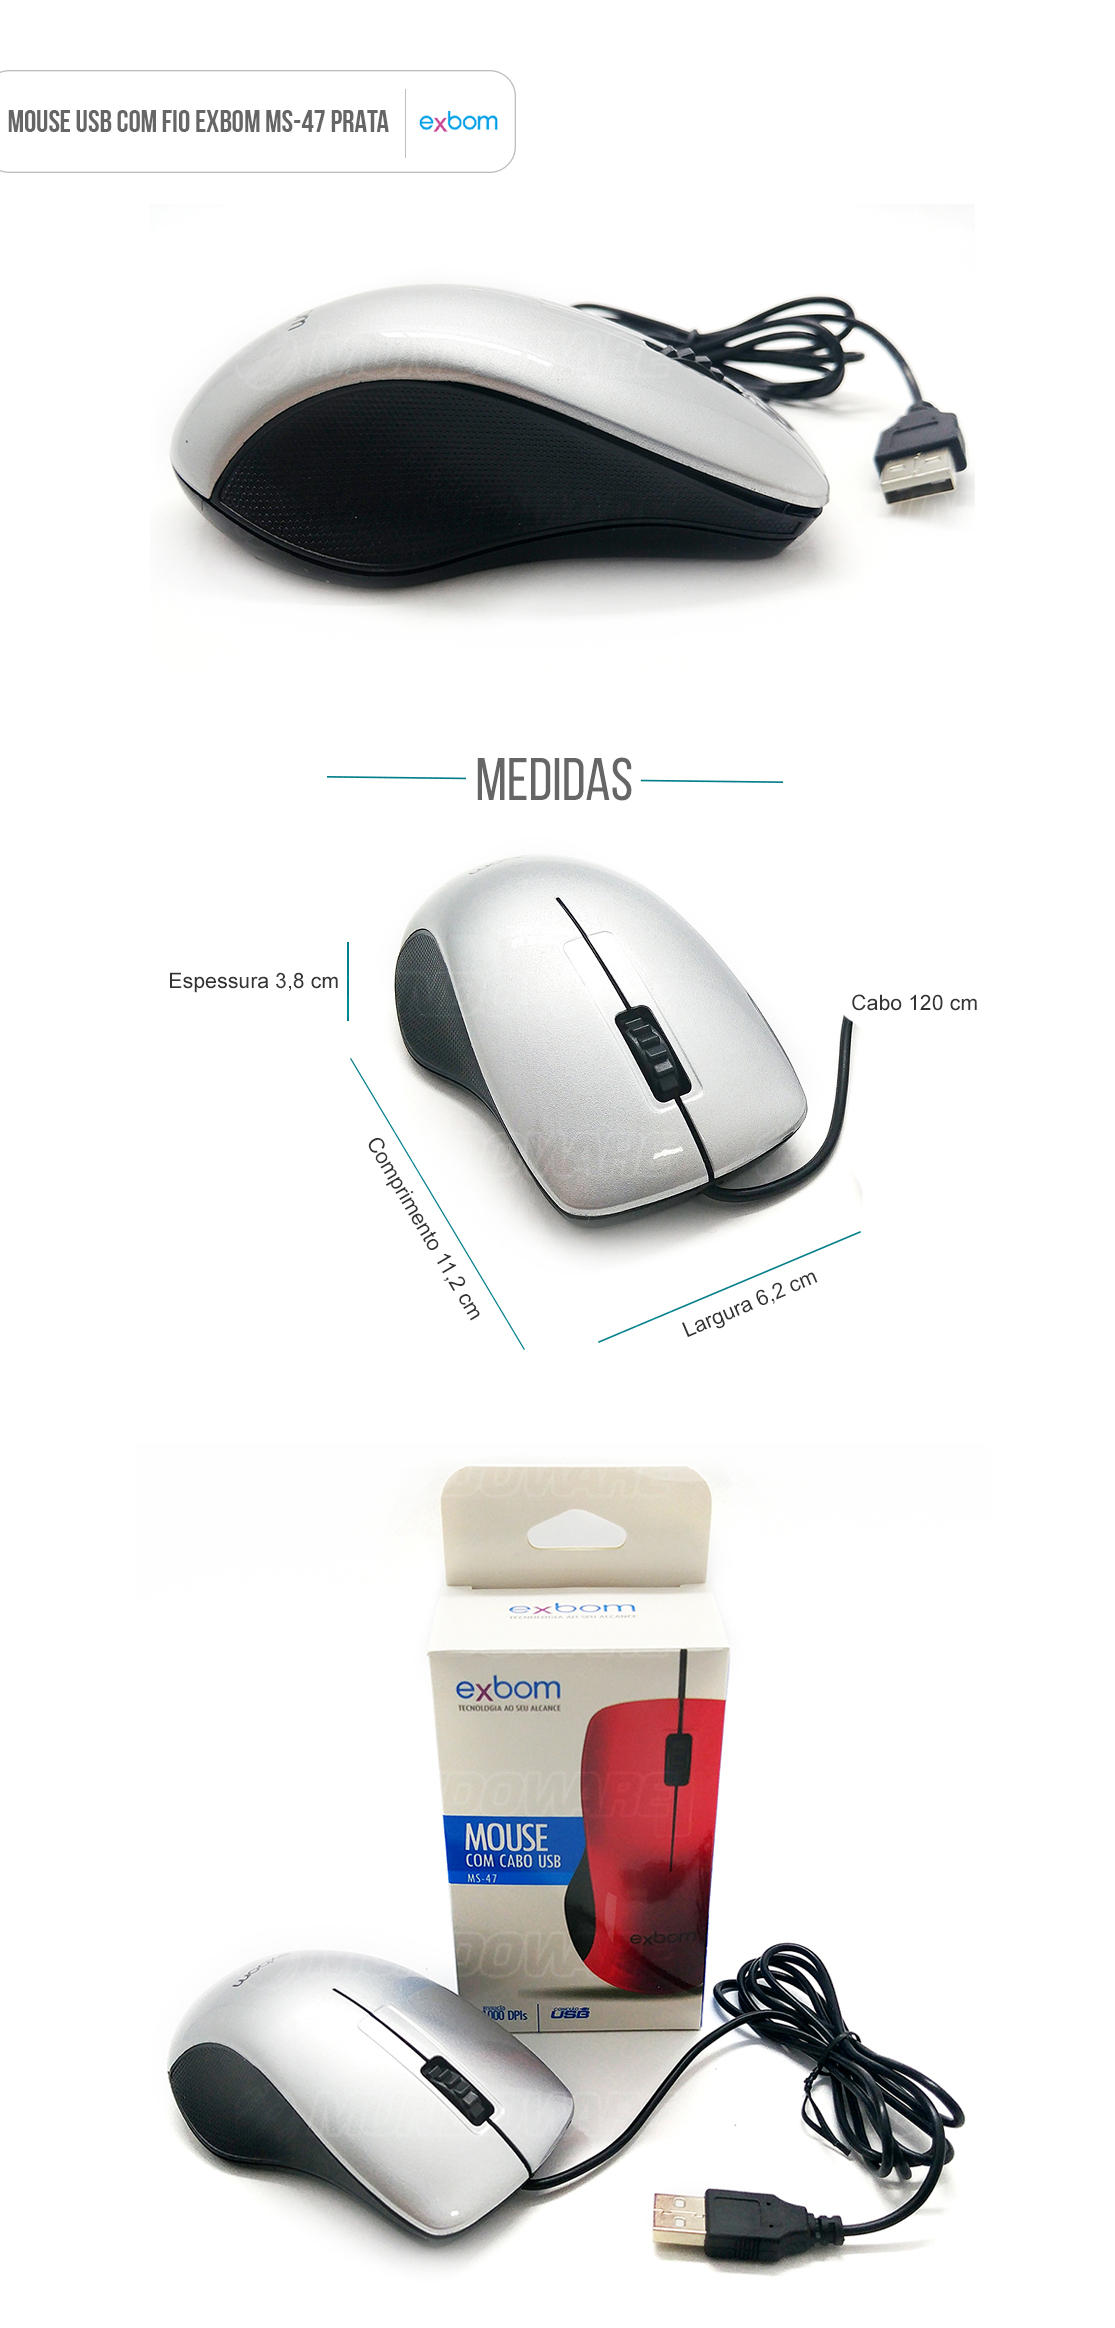 Mouse usb com fio sensor optico com scroll Prata piano